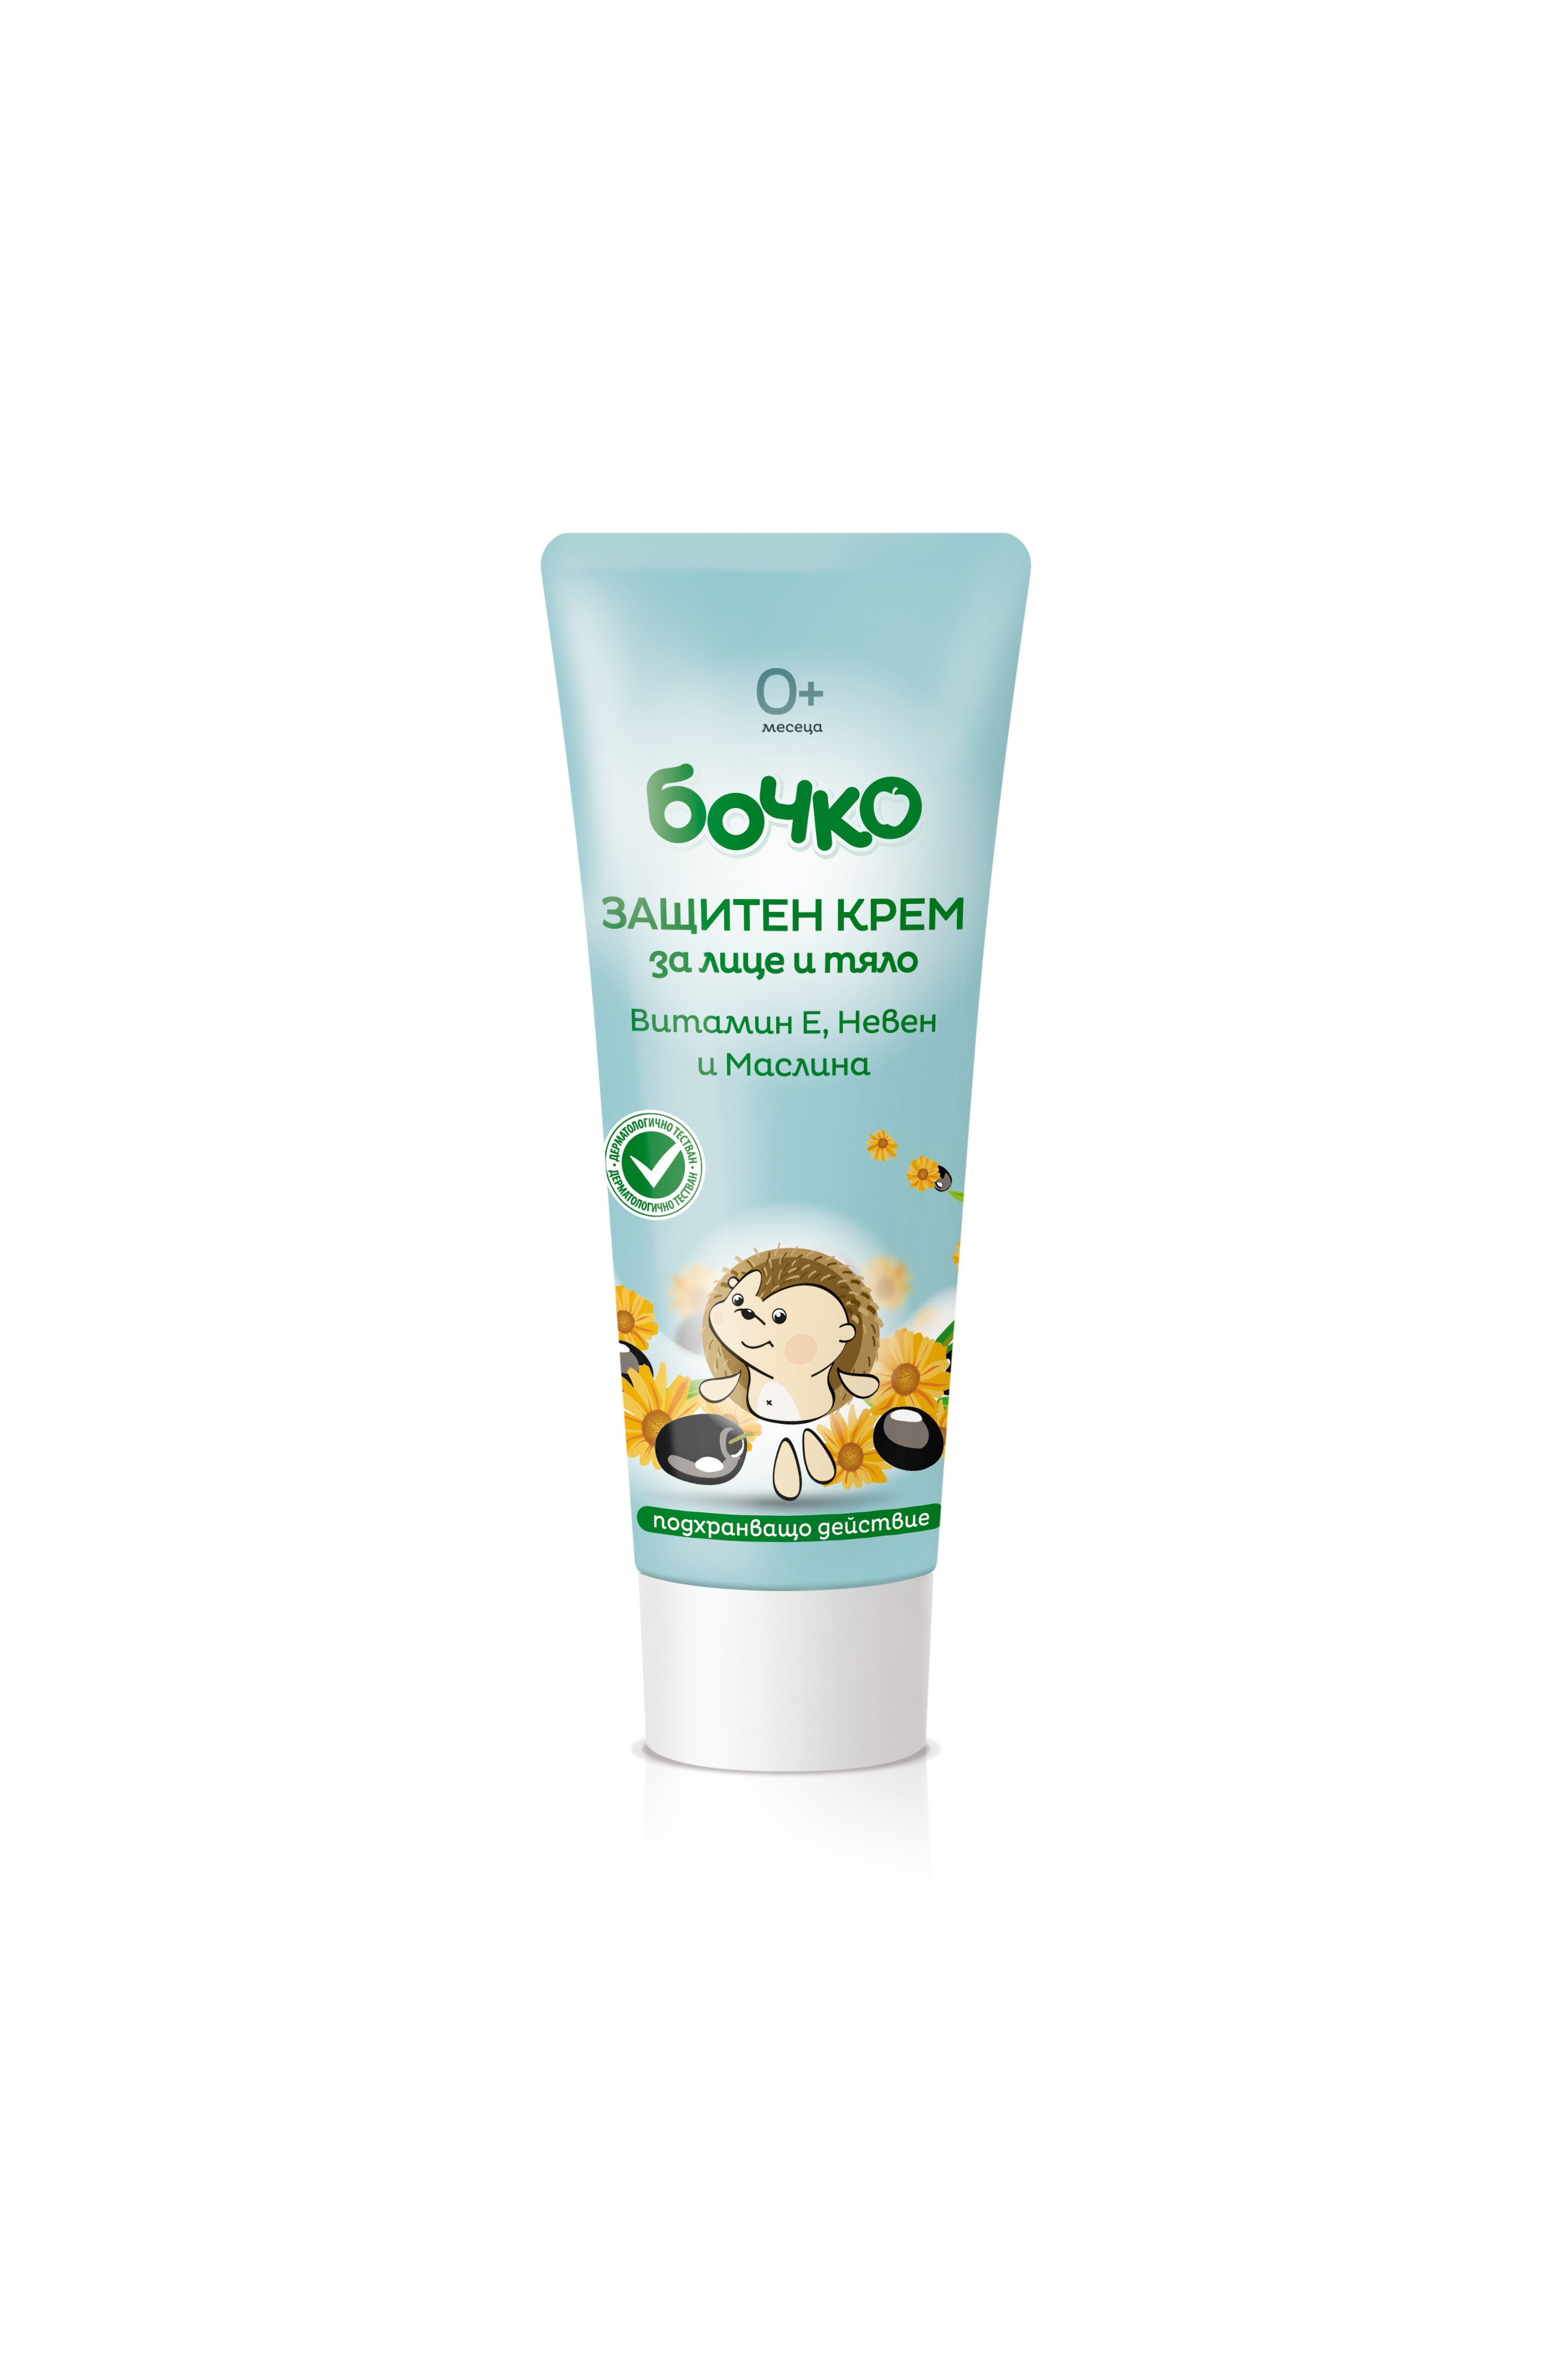 БОЧКО Защитен крем 75мл | BOCHKO Protective cream for face and body 75ml